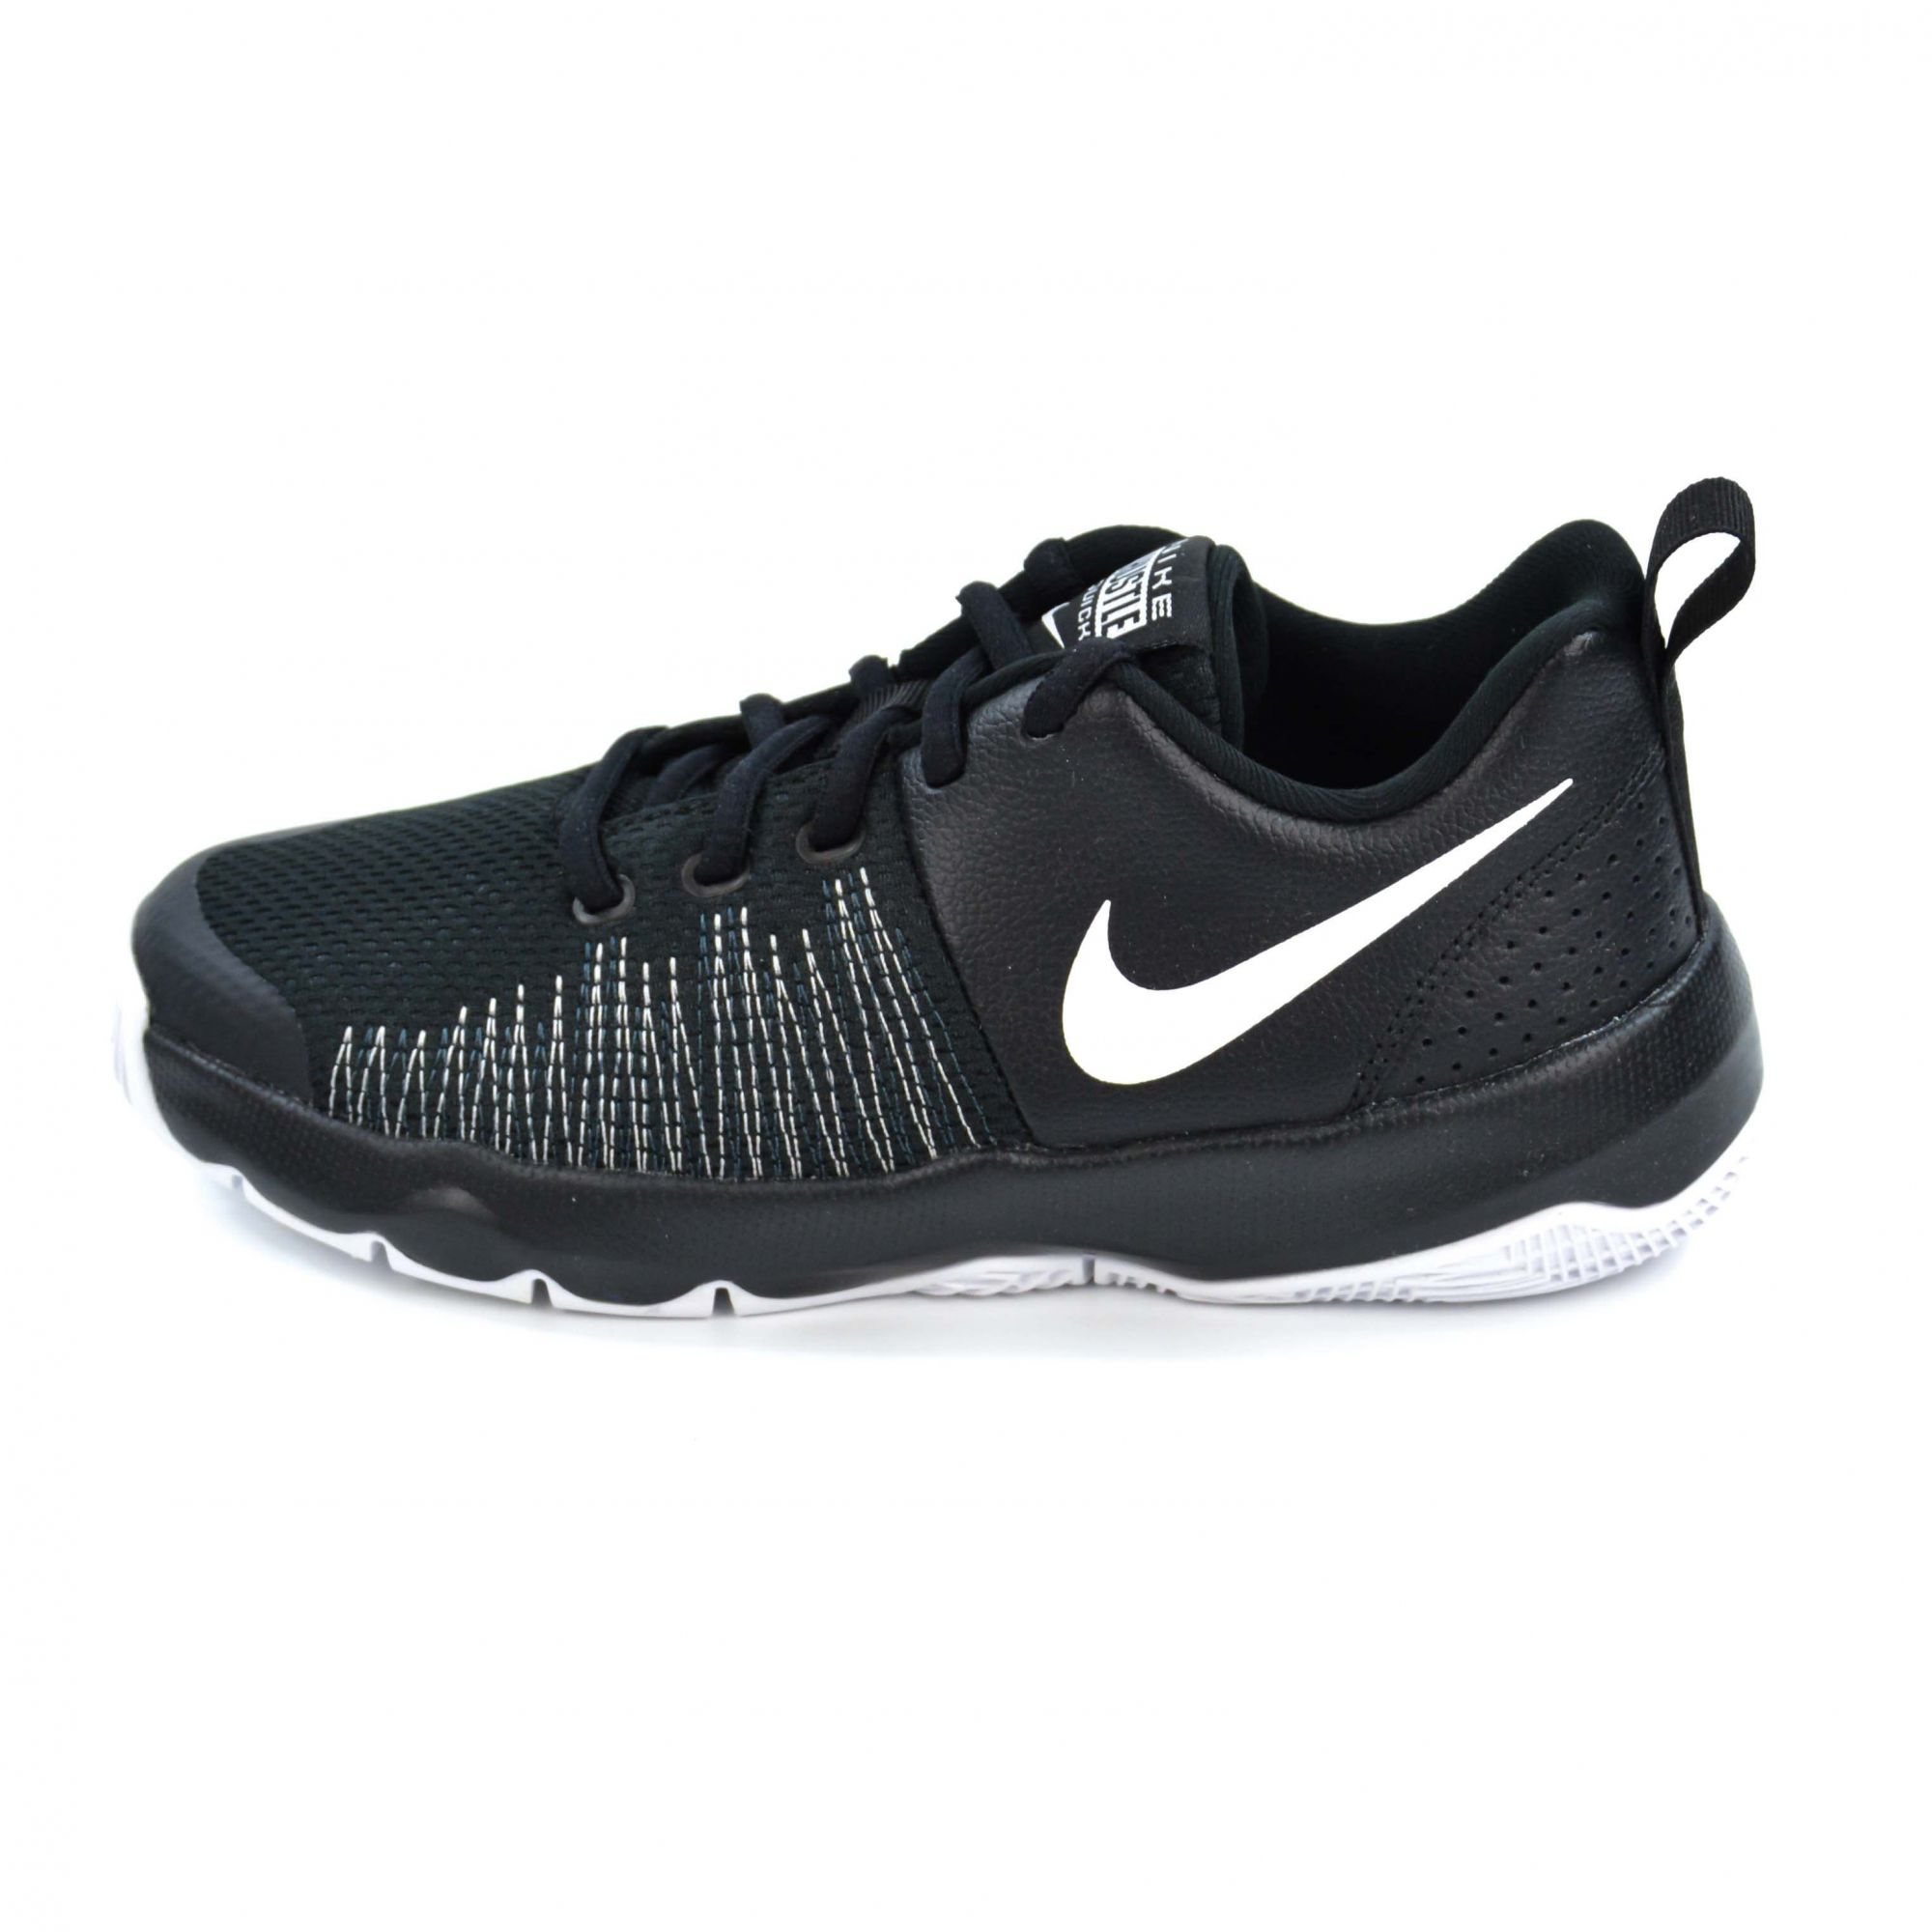 TÊNIS JUVENIL TEAM HUSTLE QUICK BLACK/WHITE NIKE 16342